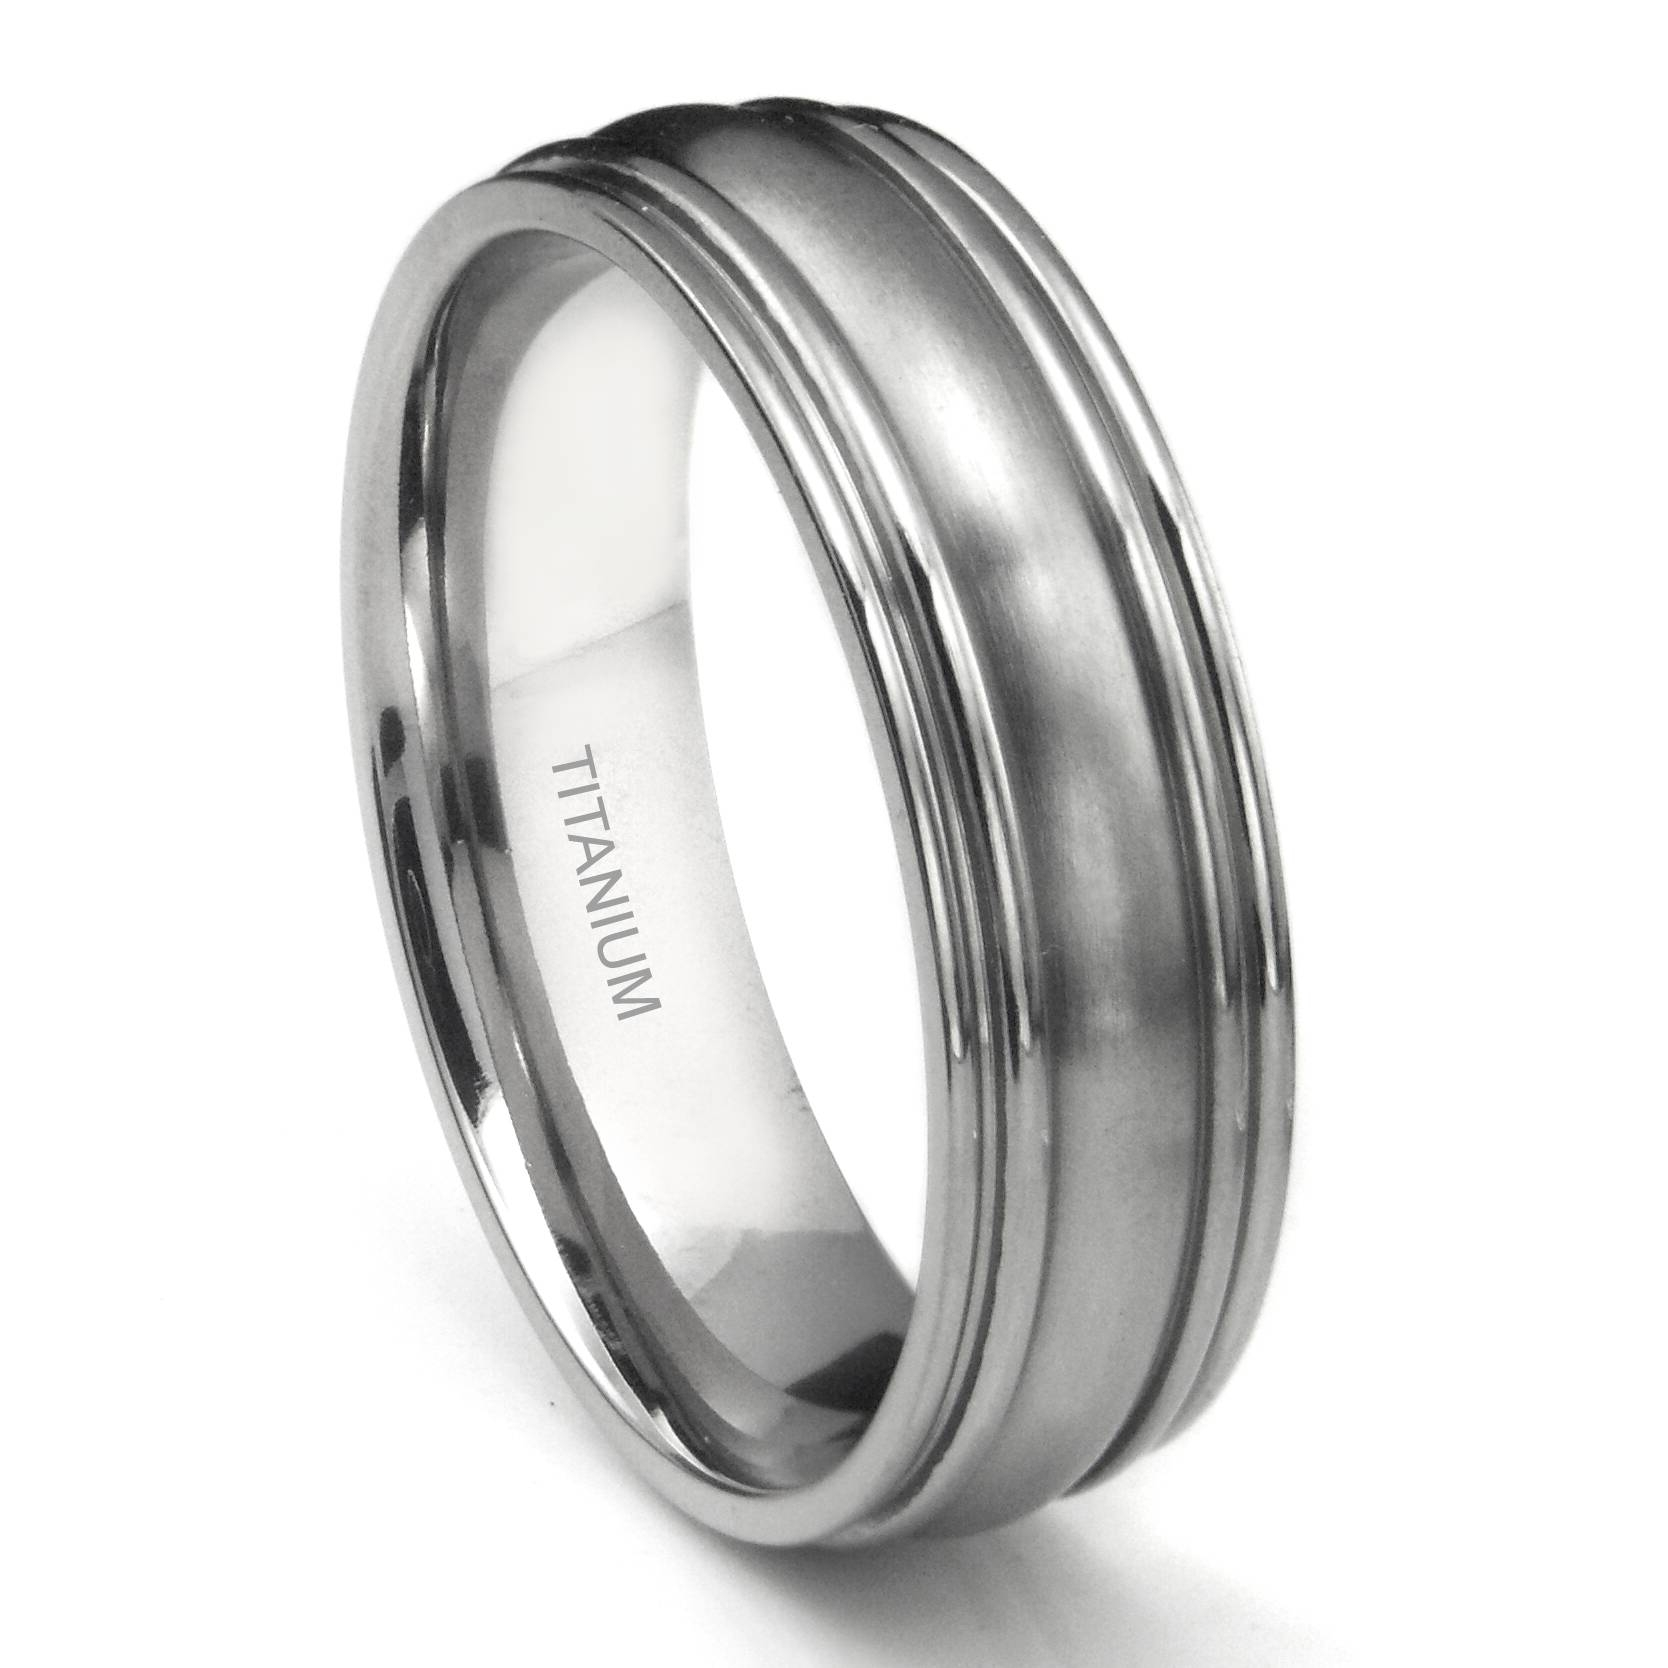 Titanium 7Mm Ribbed Men's Wedding Ring Pertaining To Titanium Wedding Bands For Men (View 9 of 15)